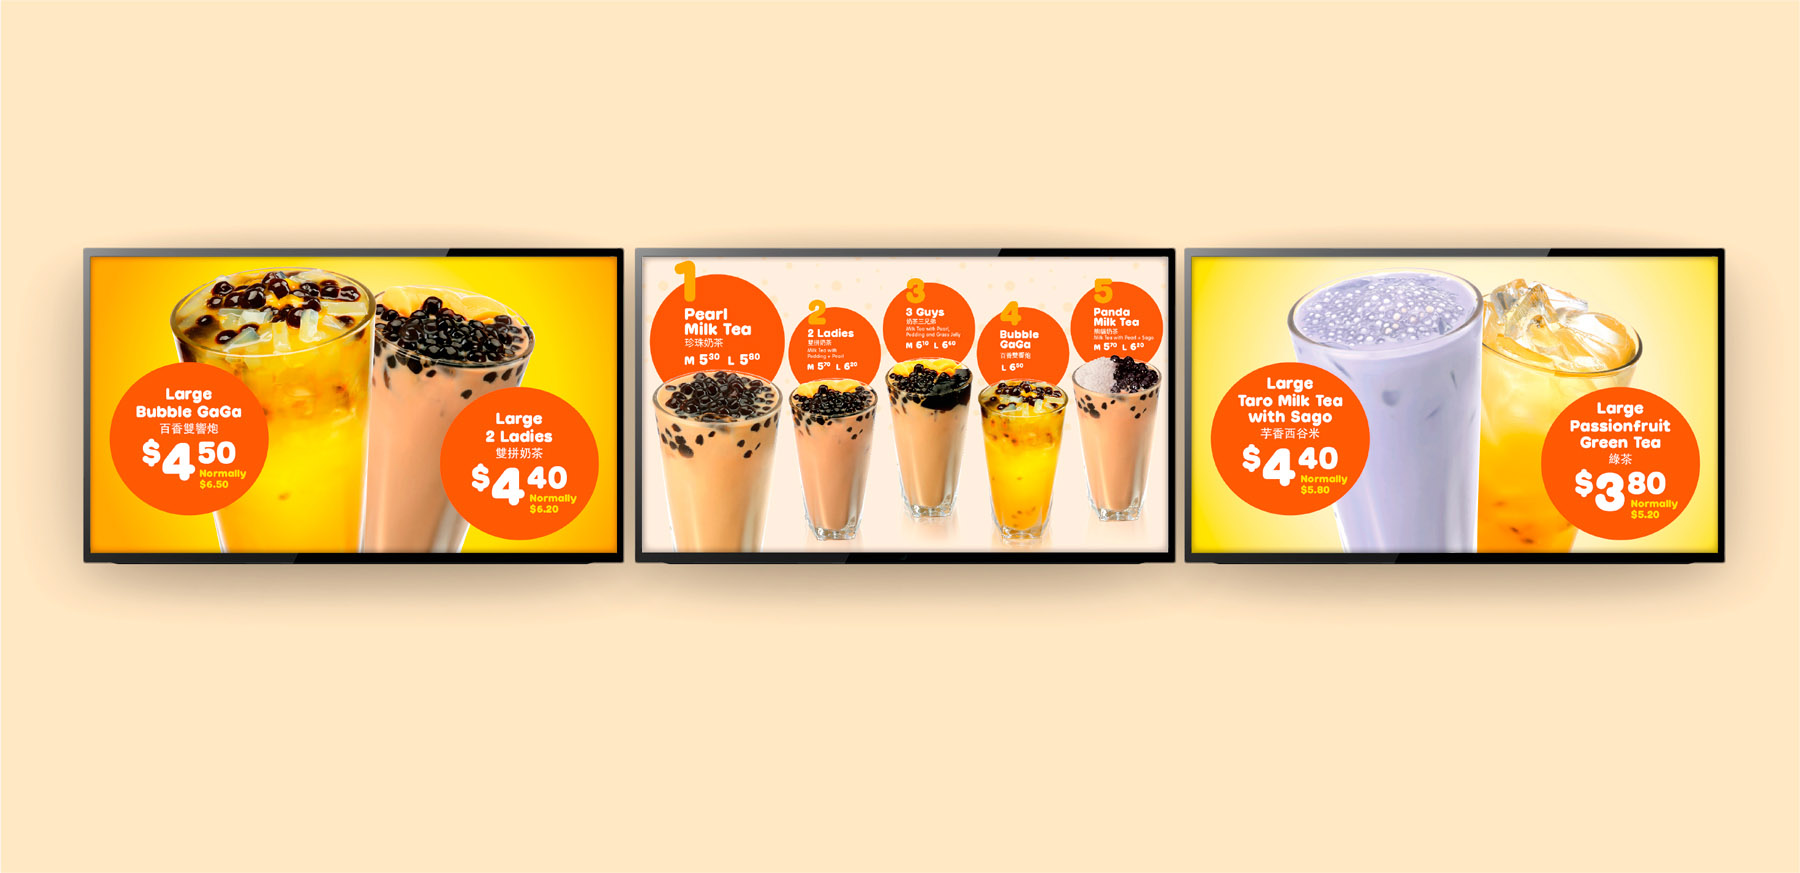 Coco-tea-launch-campaign-digital-screen-menu-2